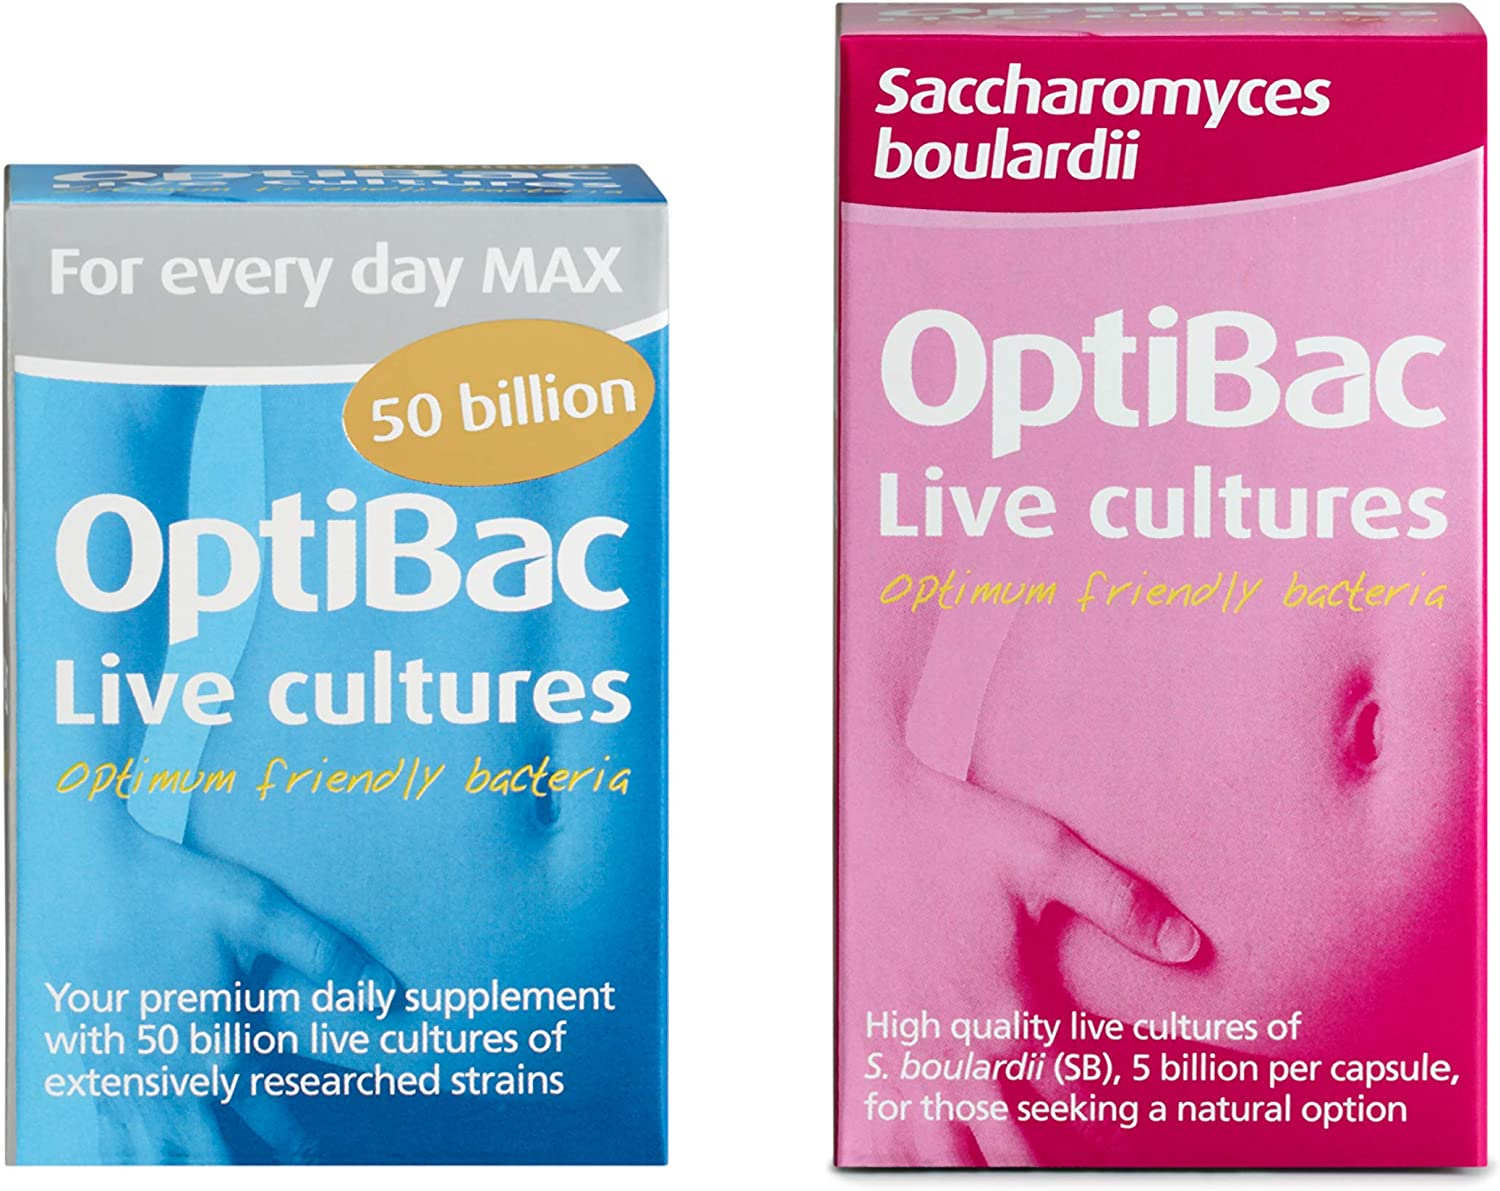 OptiBac for Every Day MAX, Pack of 30 Capsules & Saccharomyces Boulardii, Pack of 40 Capsules